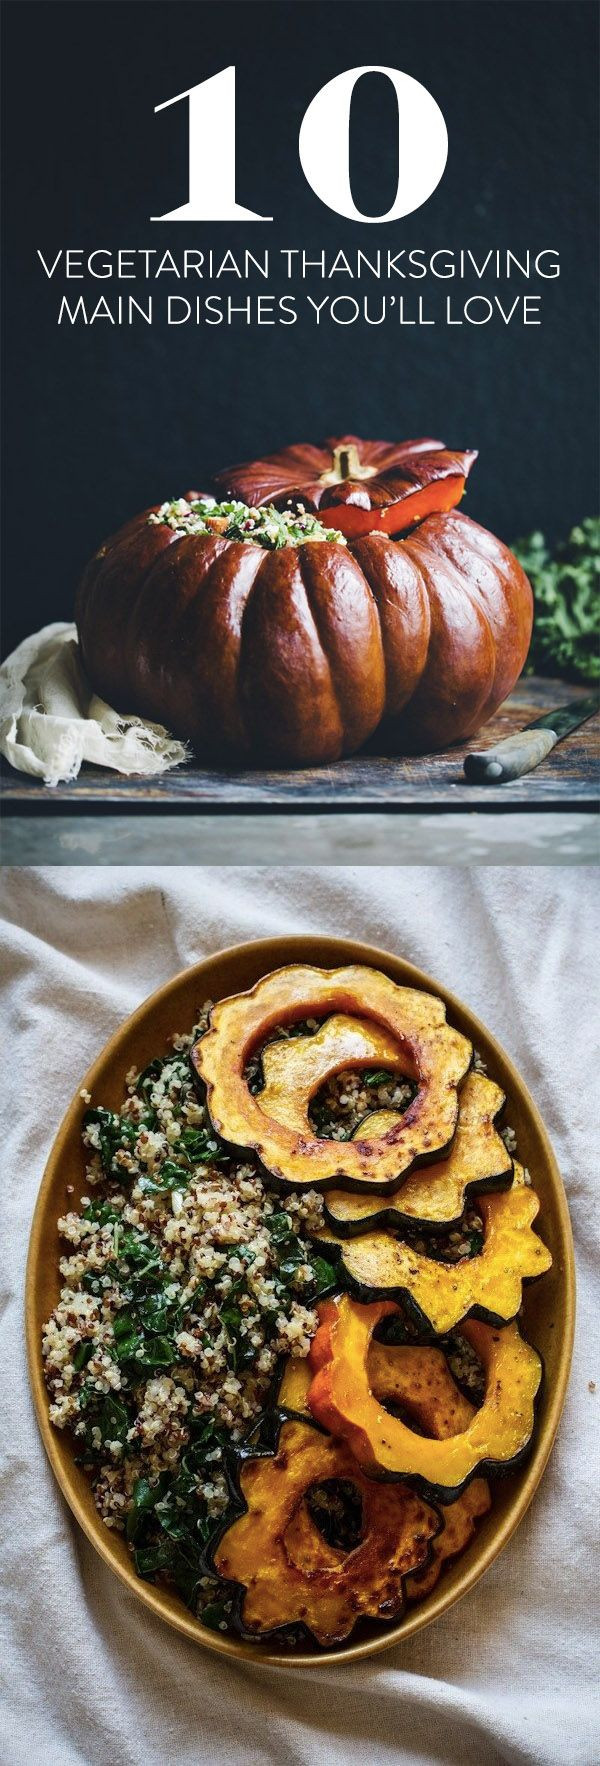 Vegetarian Thanksgiving Main Dish  Best 25 Thanksgiving ve ables ideas on Pinterest